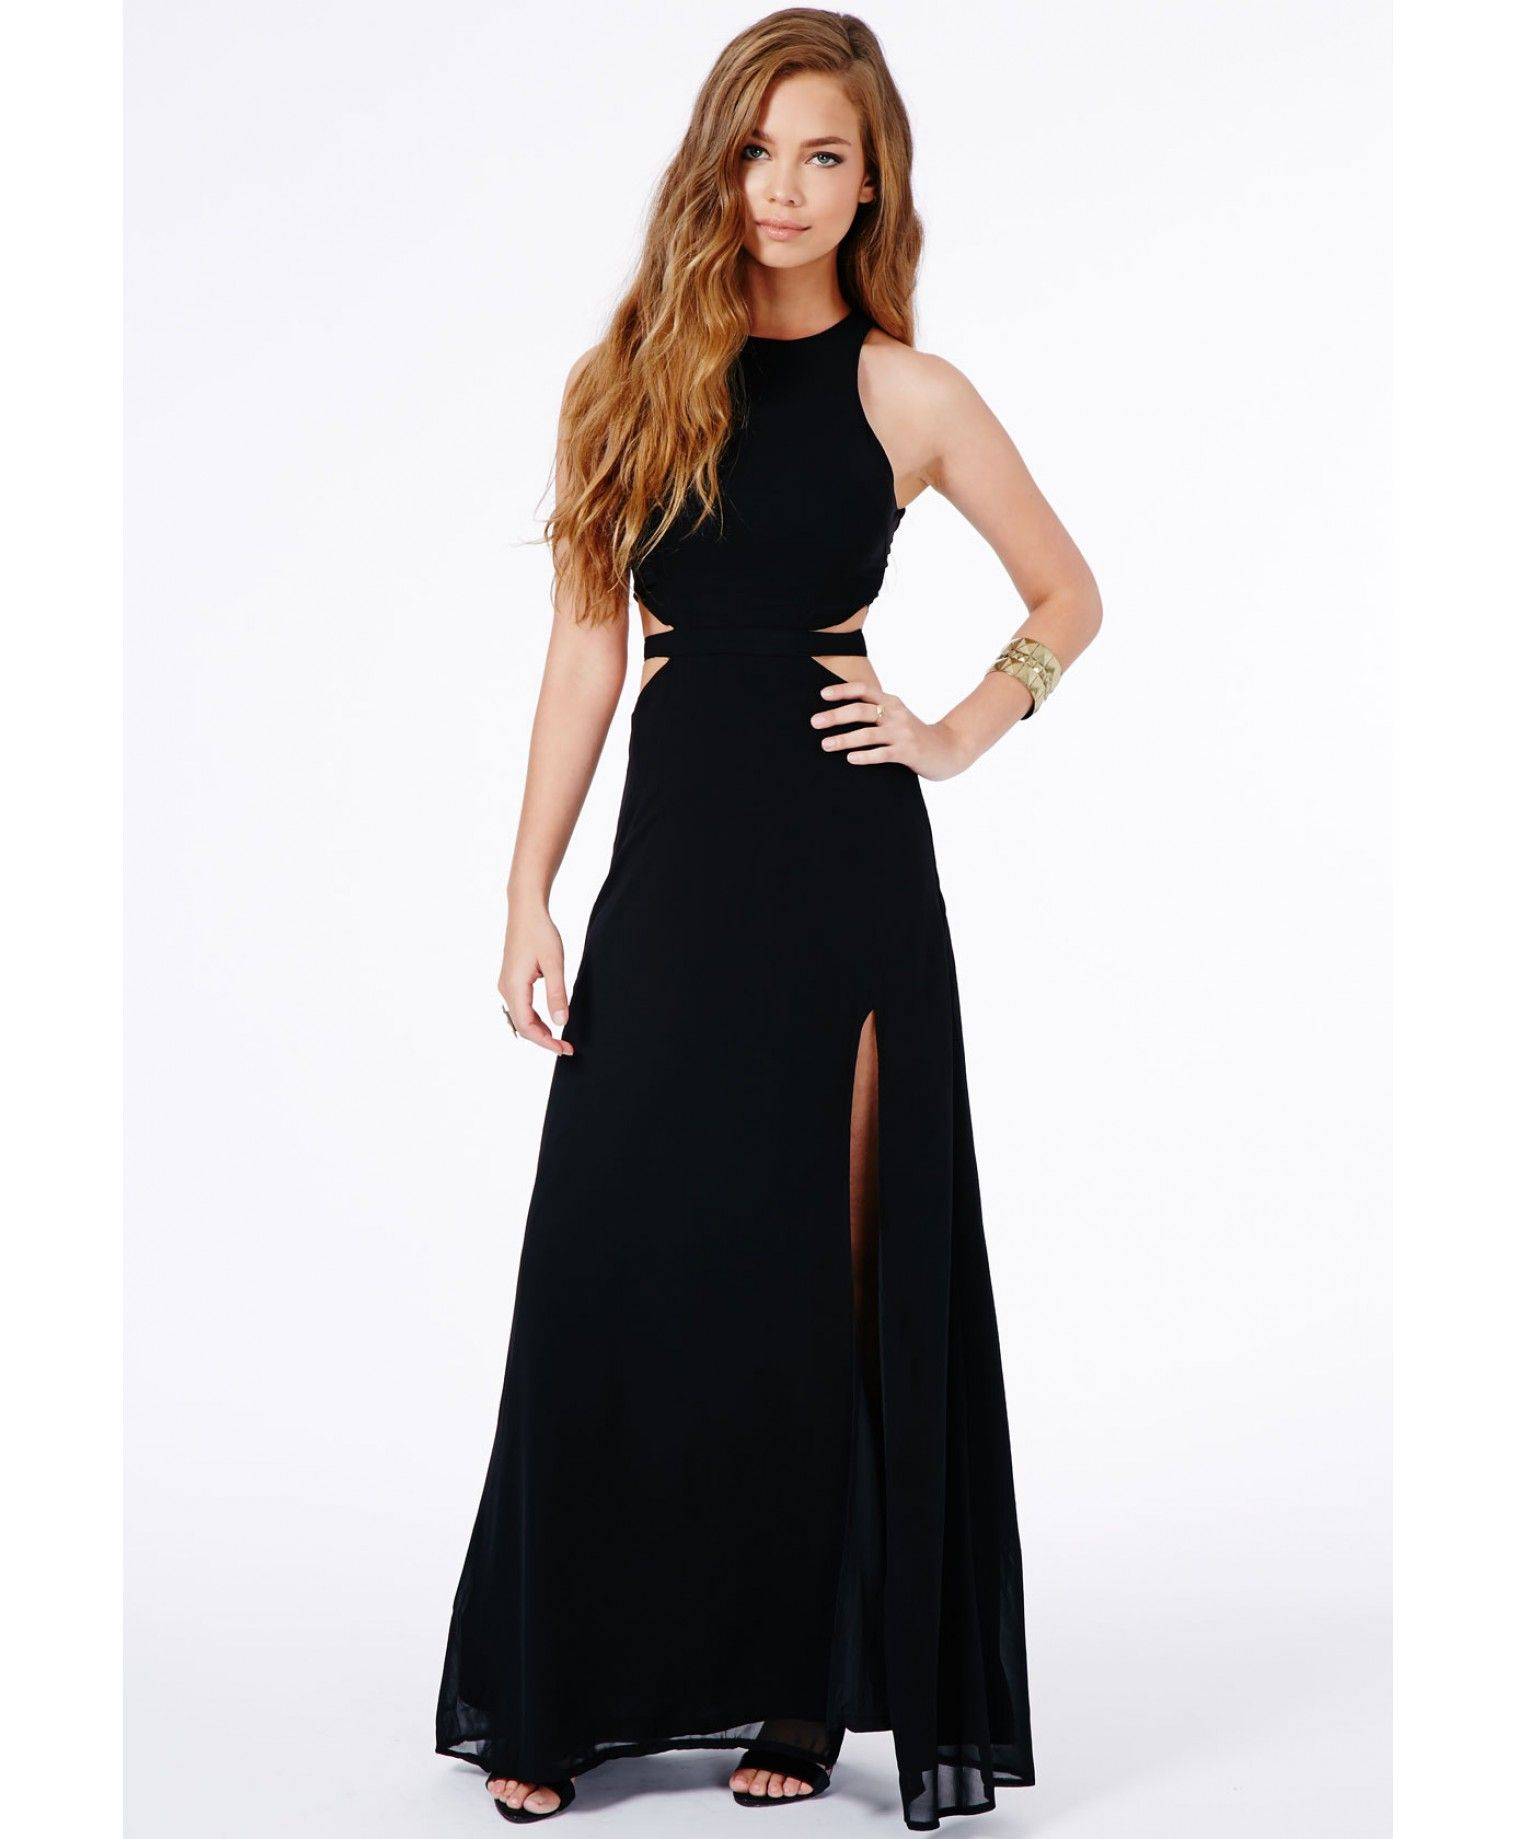 db36af5aa362 Anthea Cut Out Split Maxi Dress - Dresses - Maxi Dresses - Missguided